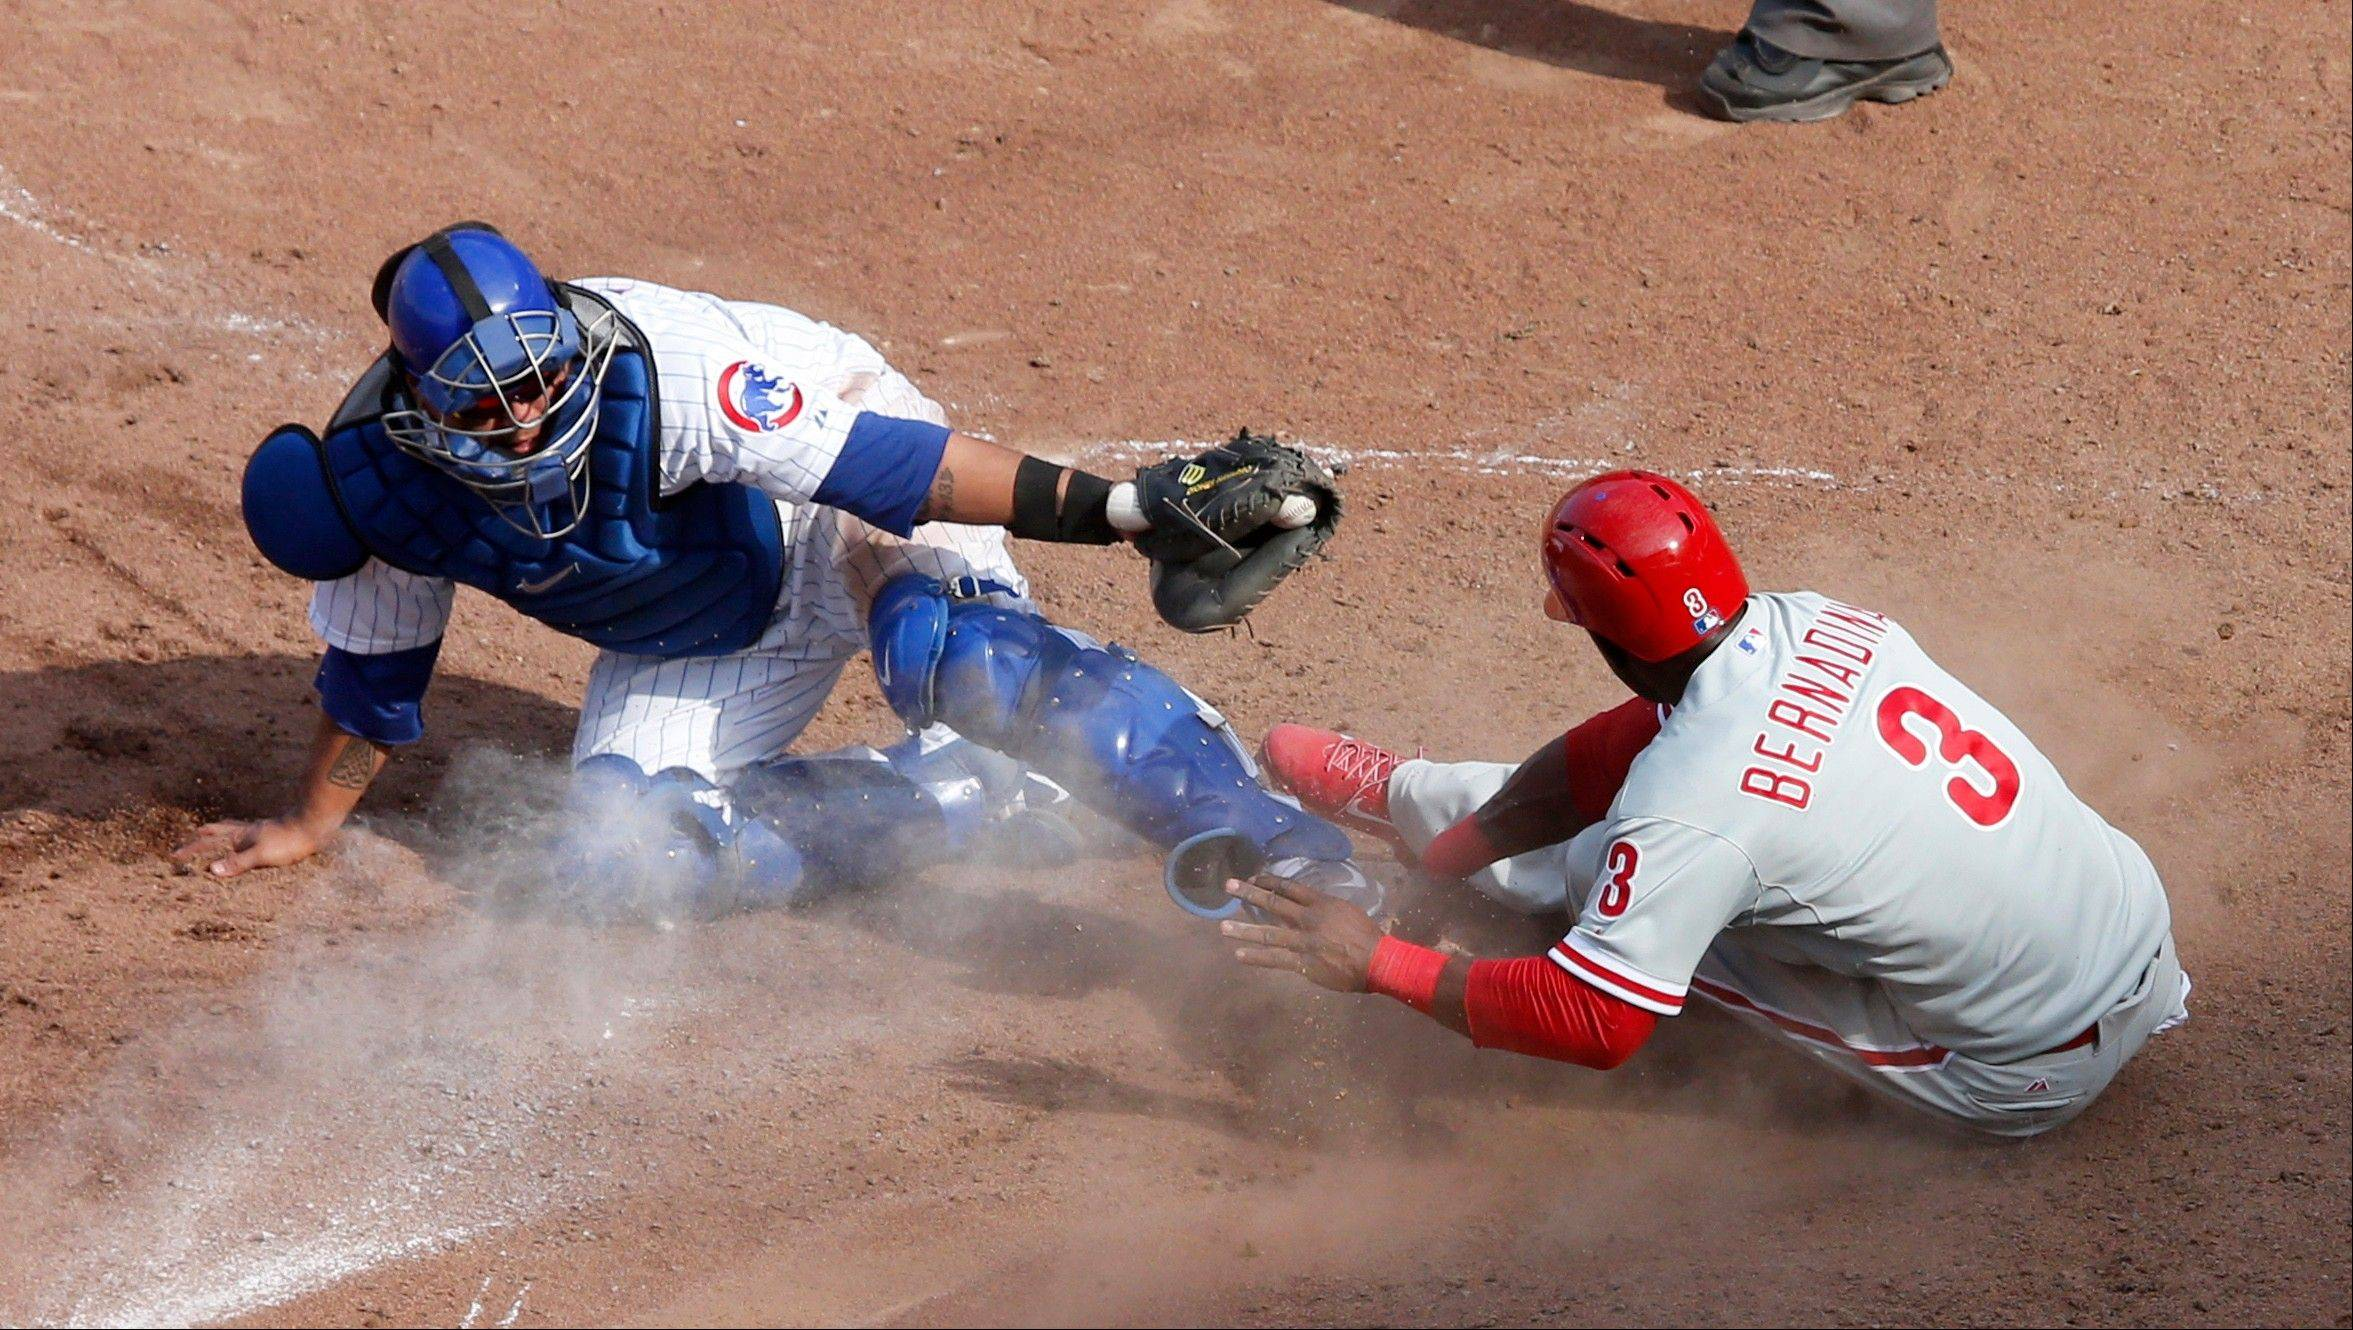 The Phillies' Roger Bernadina scores past Cubs catcher Dioner Navarro on a single by Michael Young during the ninth inning Friday in Chicago.